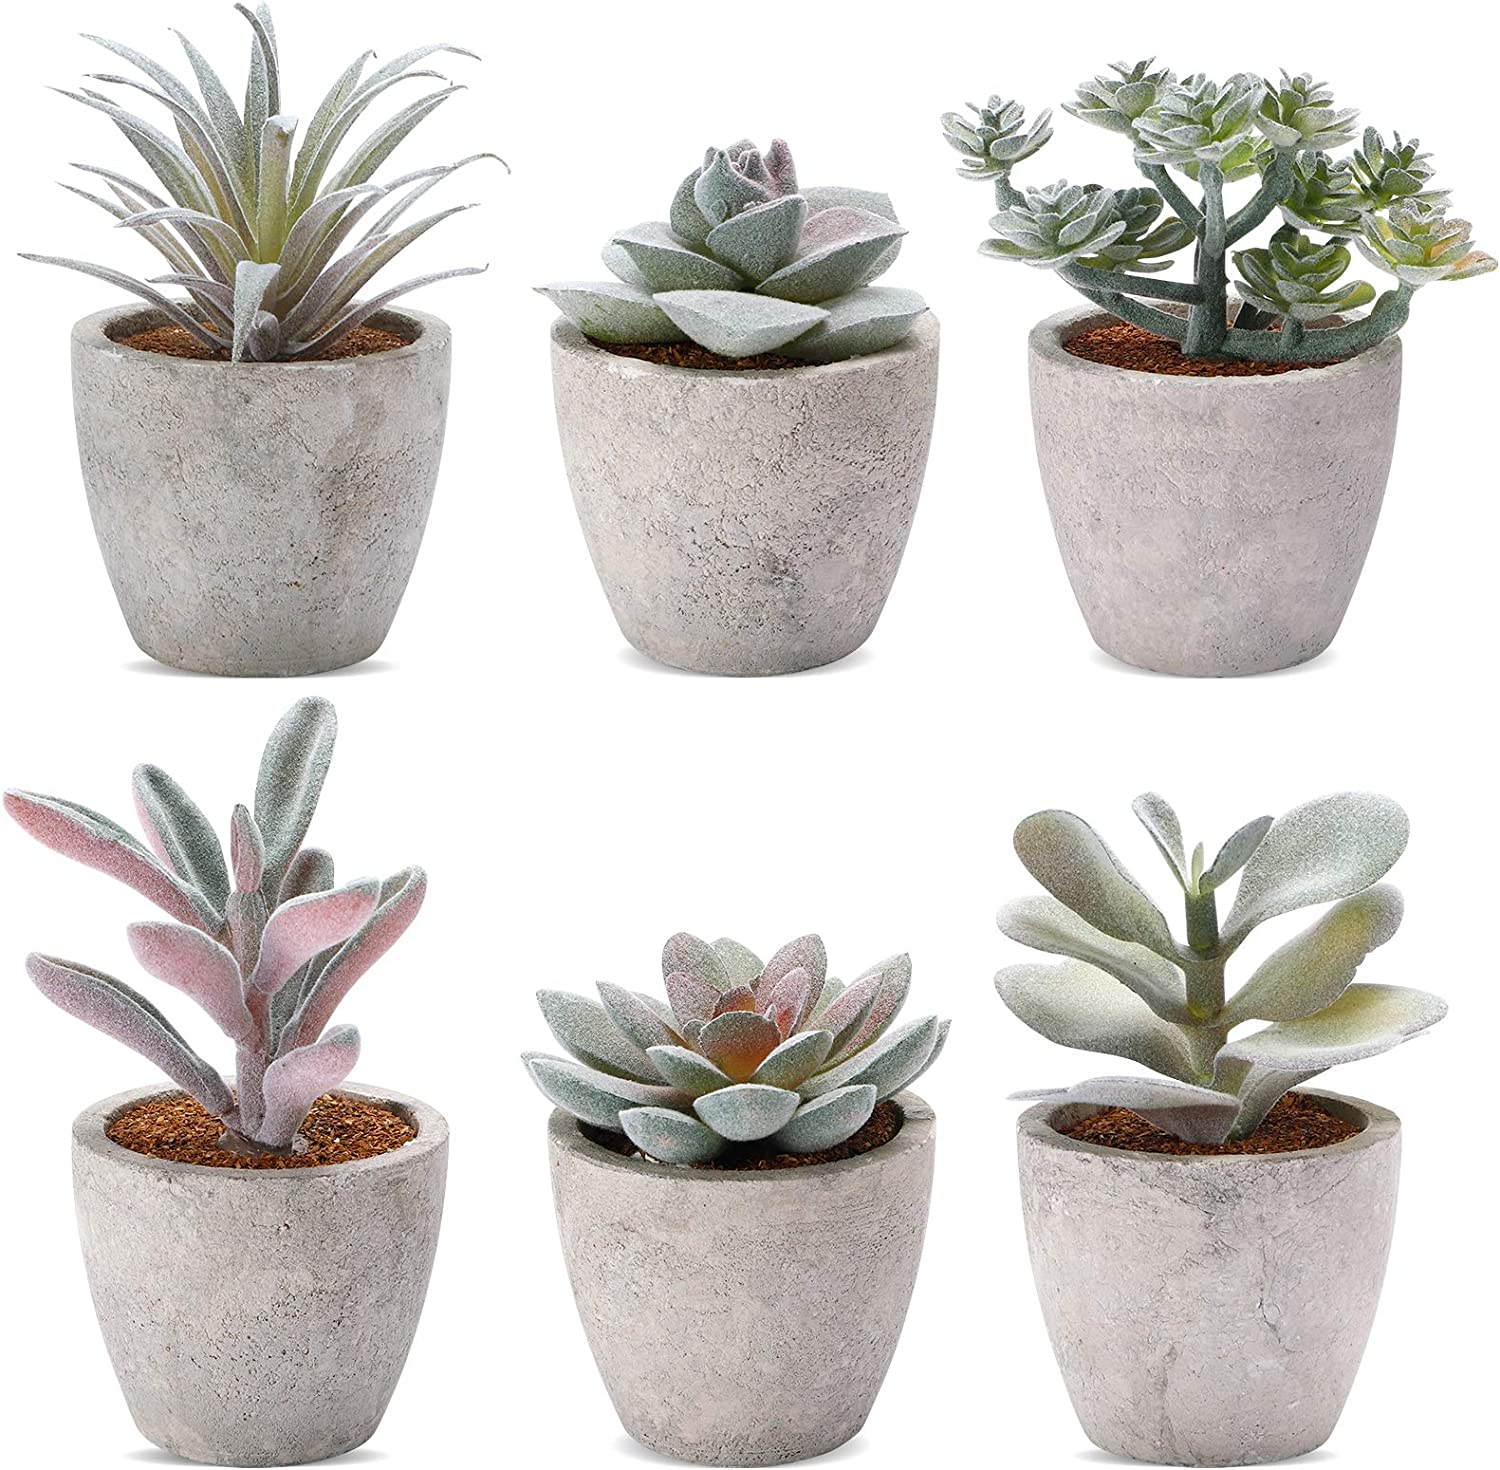 COCOBOO Artificial Succulent Set of 6 Mini Potted Fake Succulent Plants for Desk, Shelf and Office Decoration